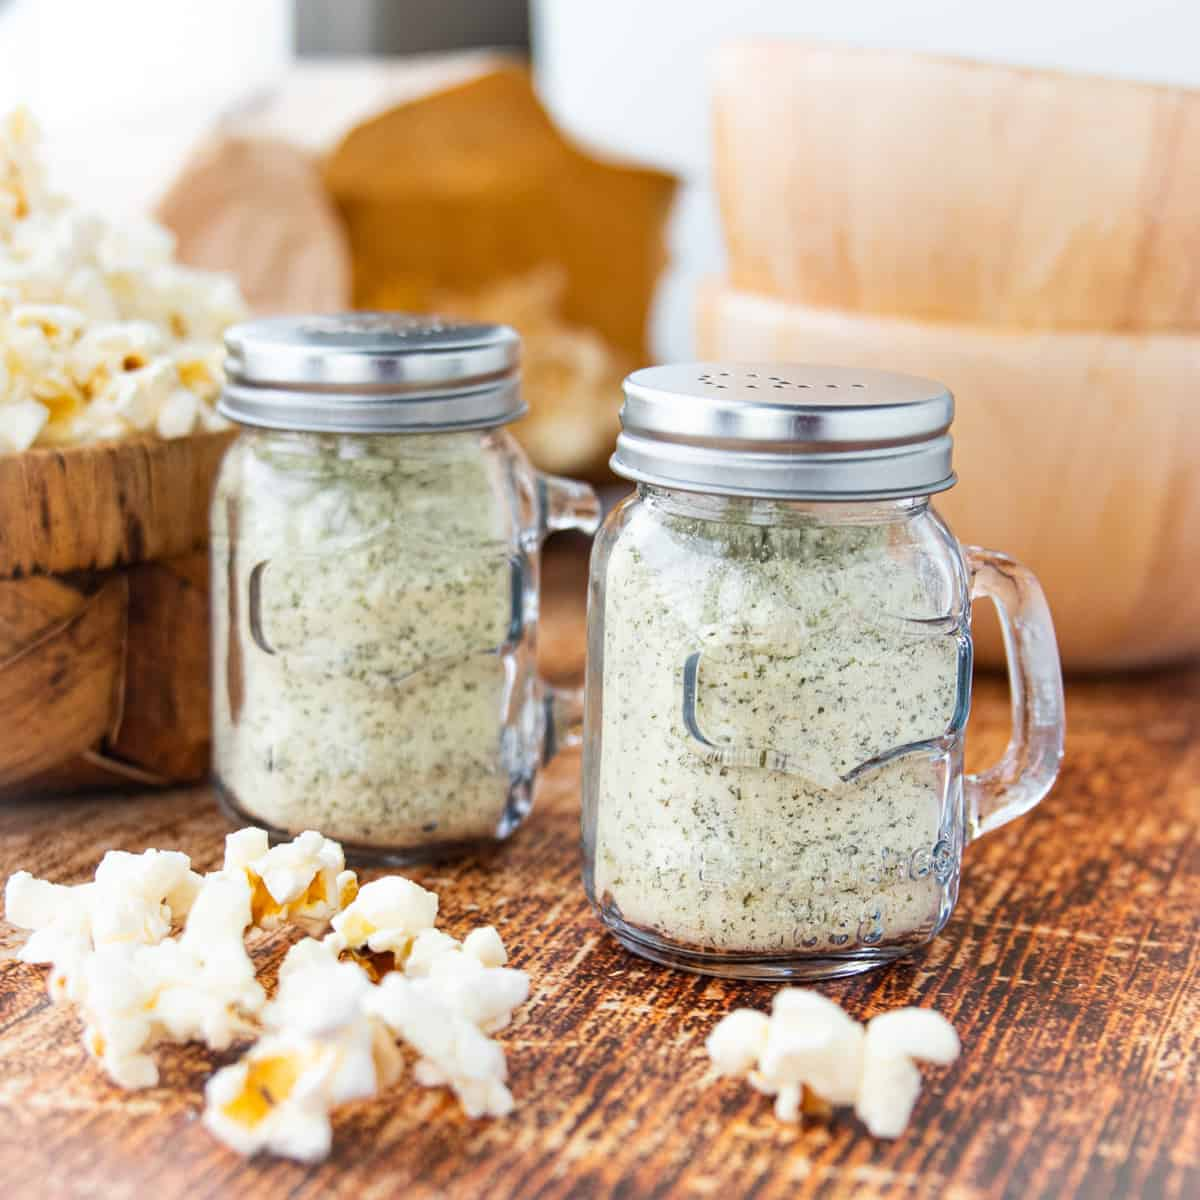 two glass salt shakers filled with ranch popcorn seasoning on a wooden surface.